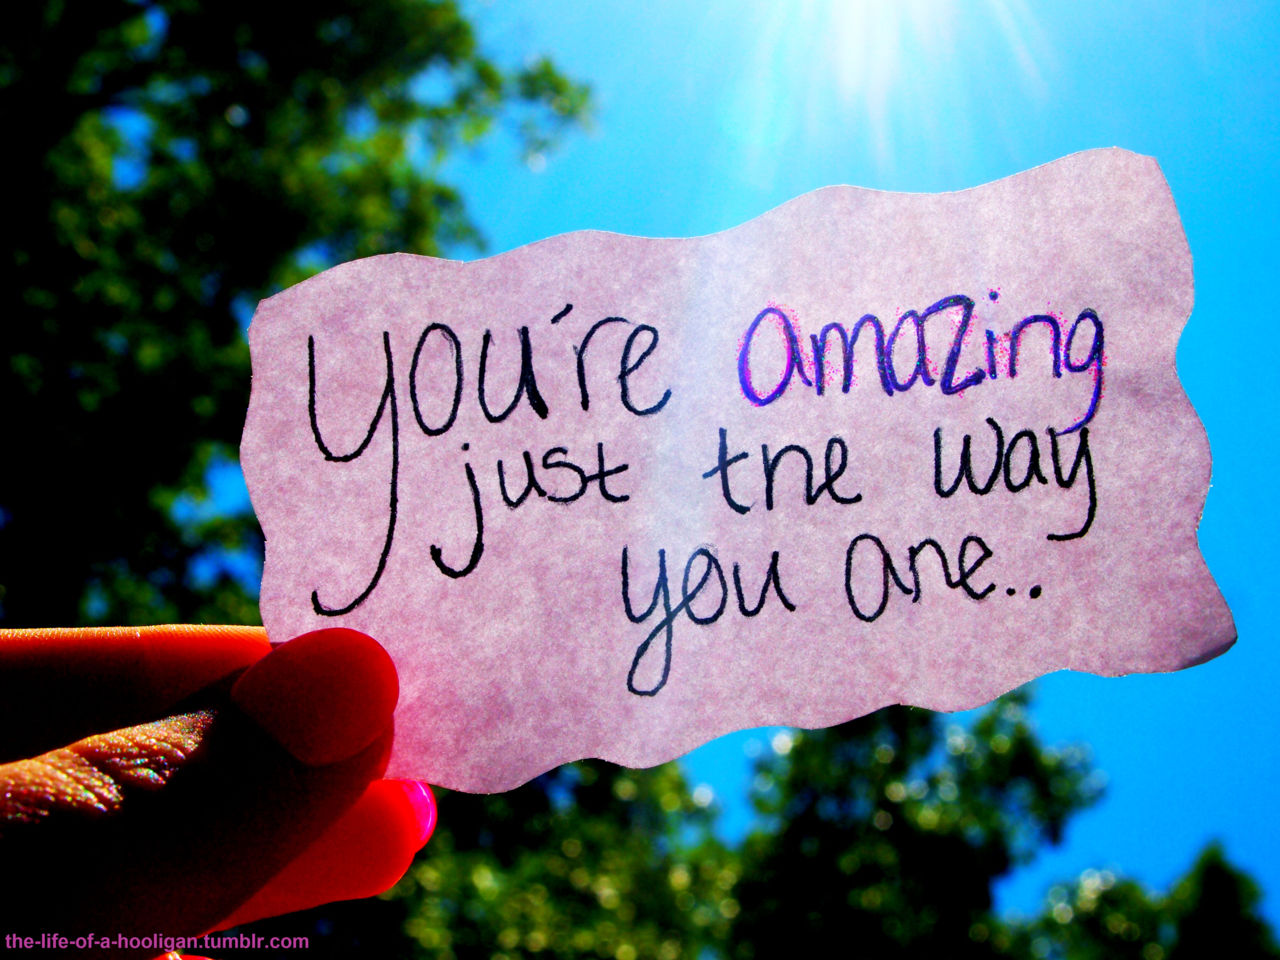 You are amazing wallpaper 1280x960 28255 1280x960